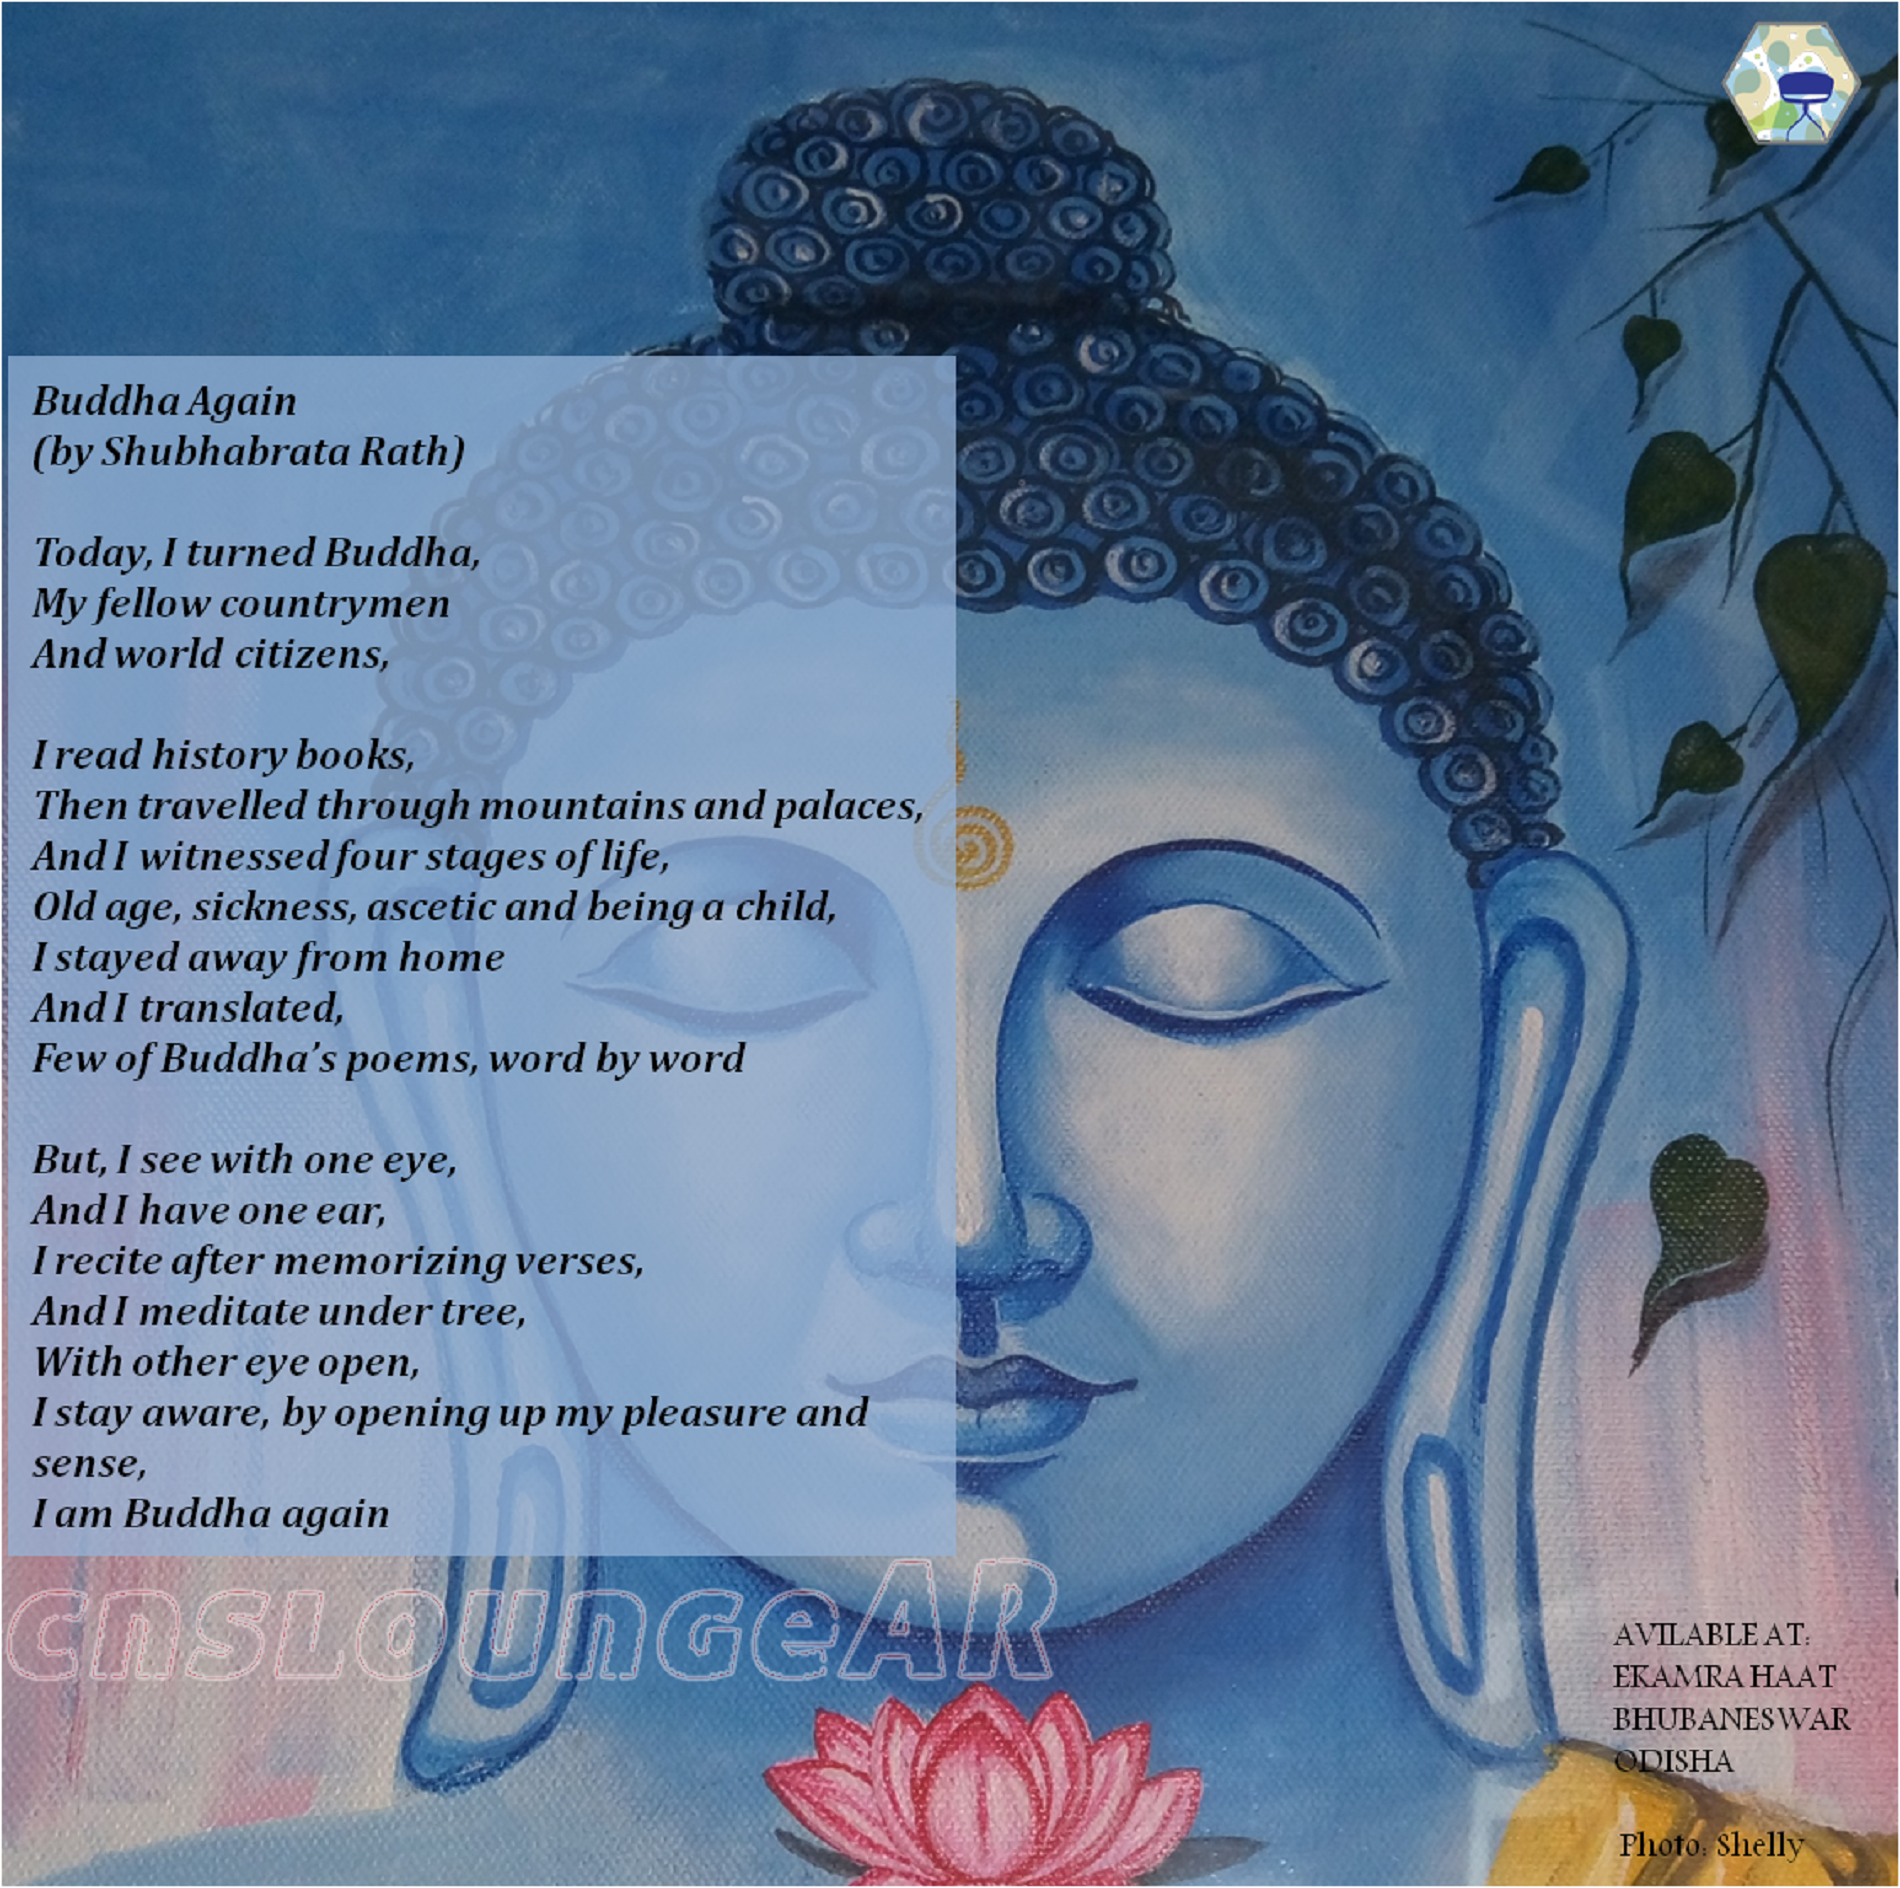 Another Word For Presume Prepossessing On Lord Buddha's Day We Present A Sarcastic Yet Humble Note On How .